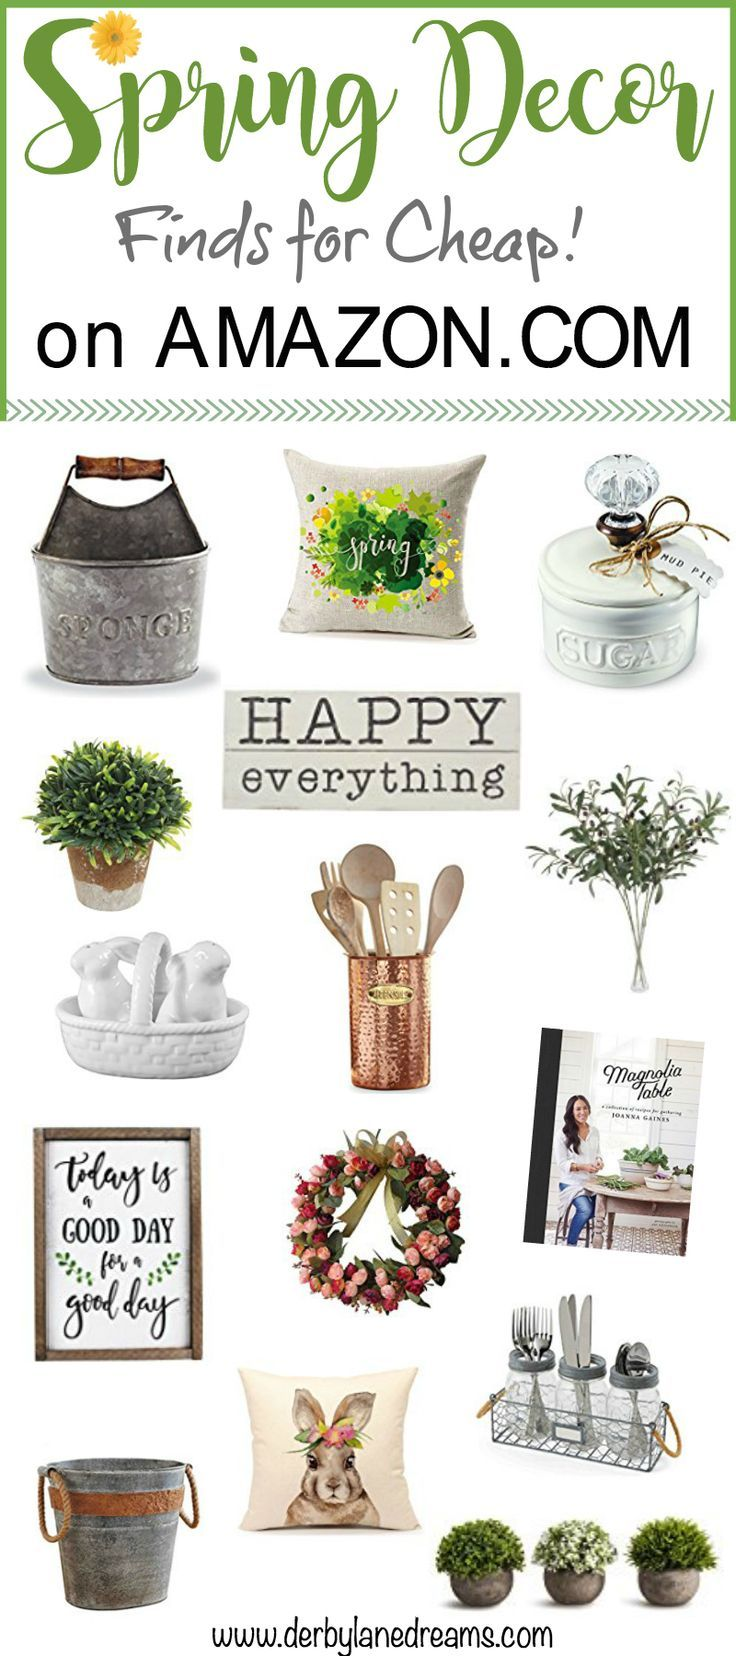 Spring decor and Easter decor ideas on a budget. Cheap, affordable decor for your apartment, for renters, and anyone. Rustic, Farmhouse, vintage, and country style. Lots of great, affordable decor options on Amazon.com. #spring #easter #ad #decor #ideas #love #interiordesign #DIY #rustic #farmhouse #cheap #sale